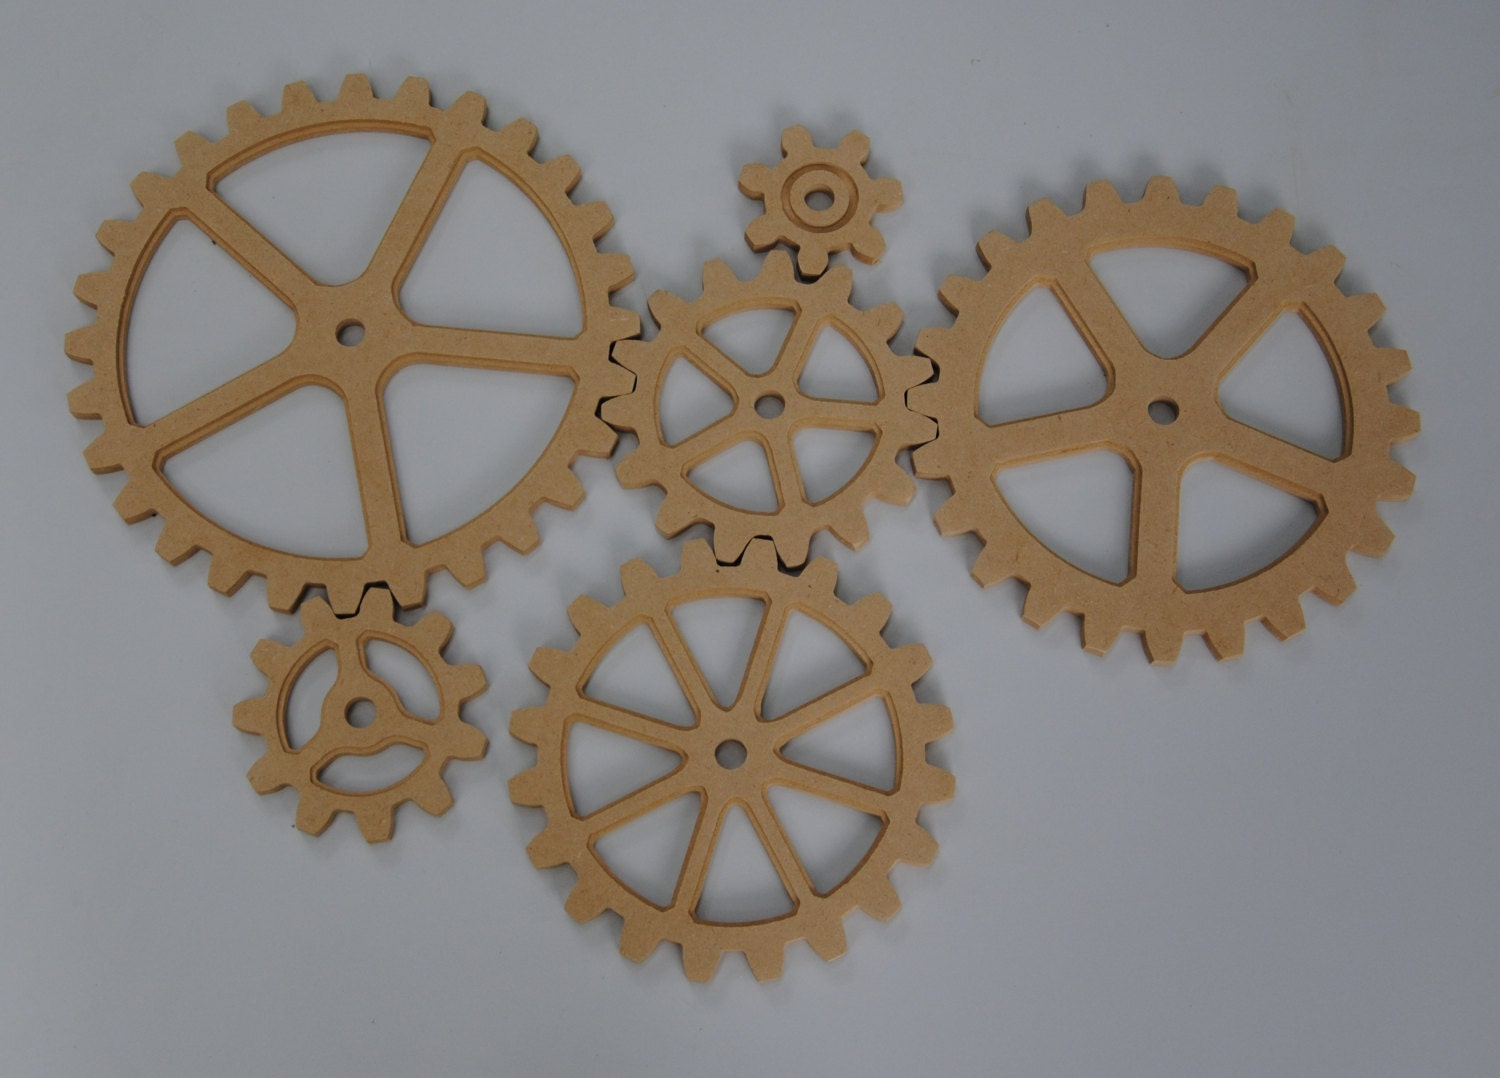 Large Wood Gear 6 Gear Set Wooden Cog Sprocket